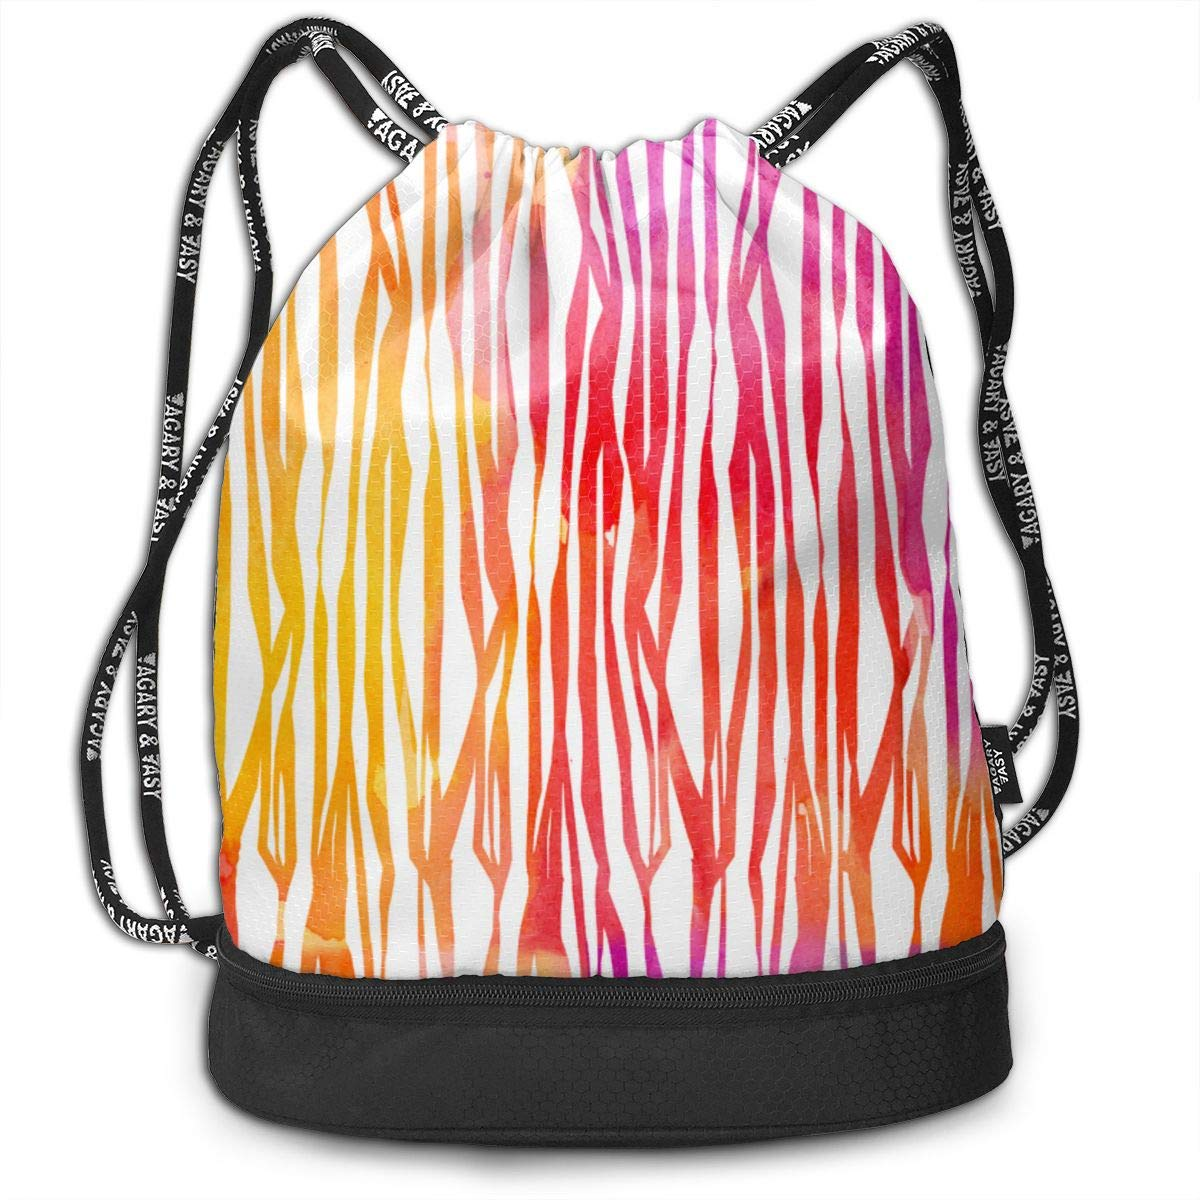 Shoes Drawstring Backpack Sports Athletic Gym Cinch Sack String Storage Bags for Hiking Travel Beach